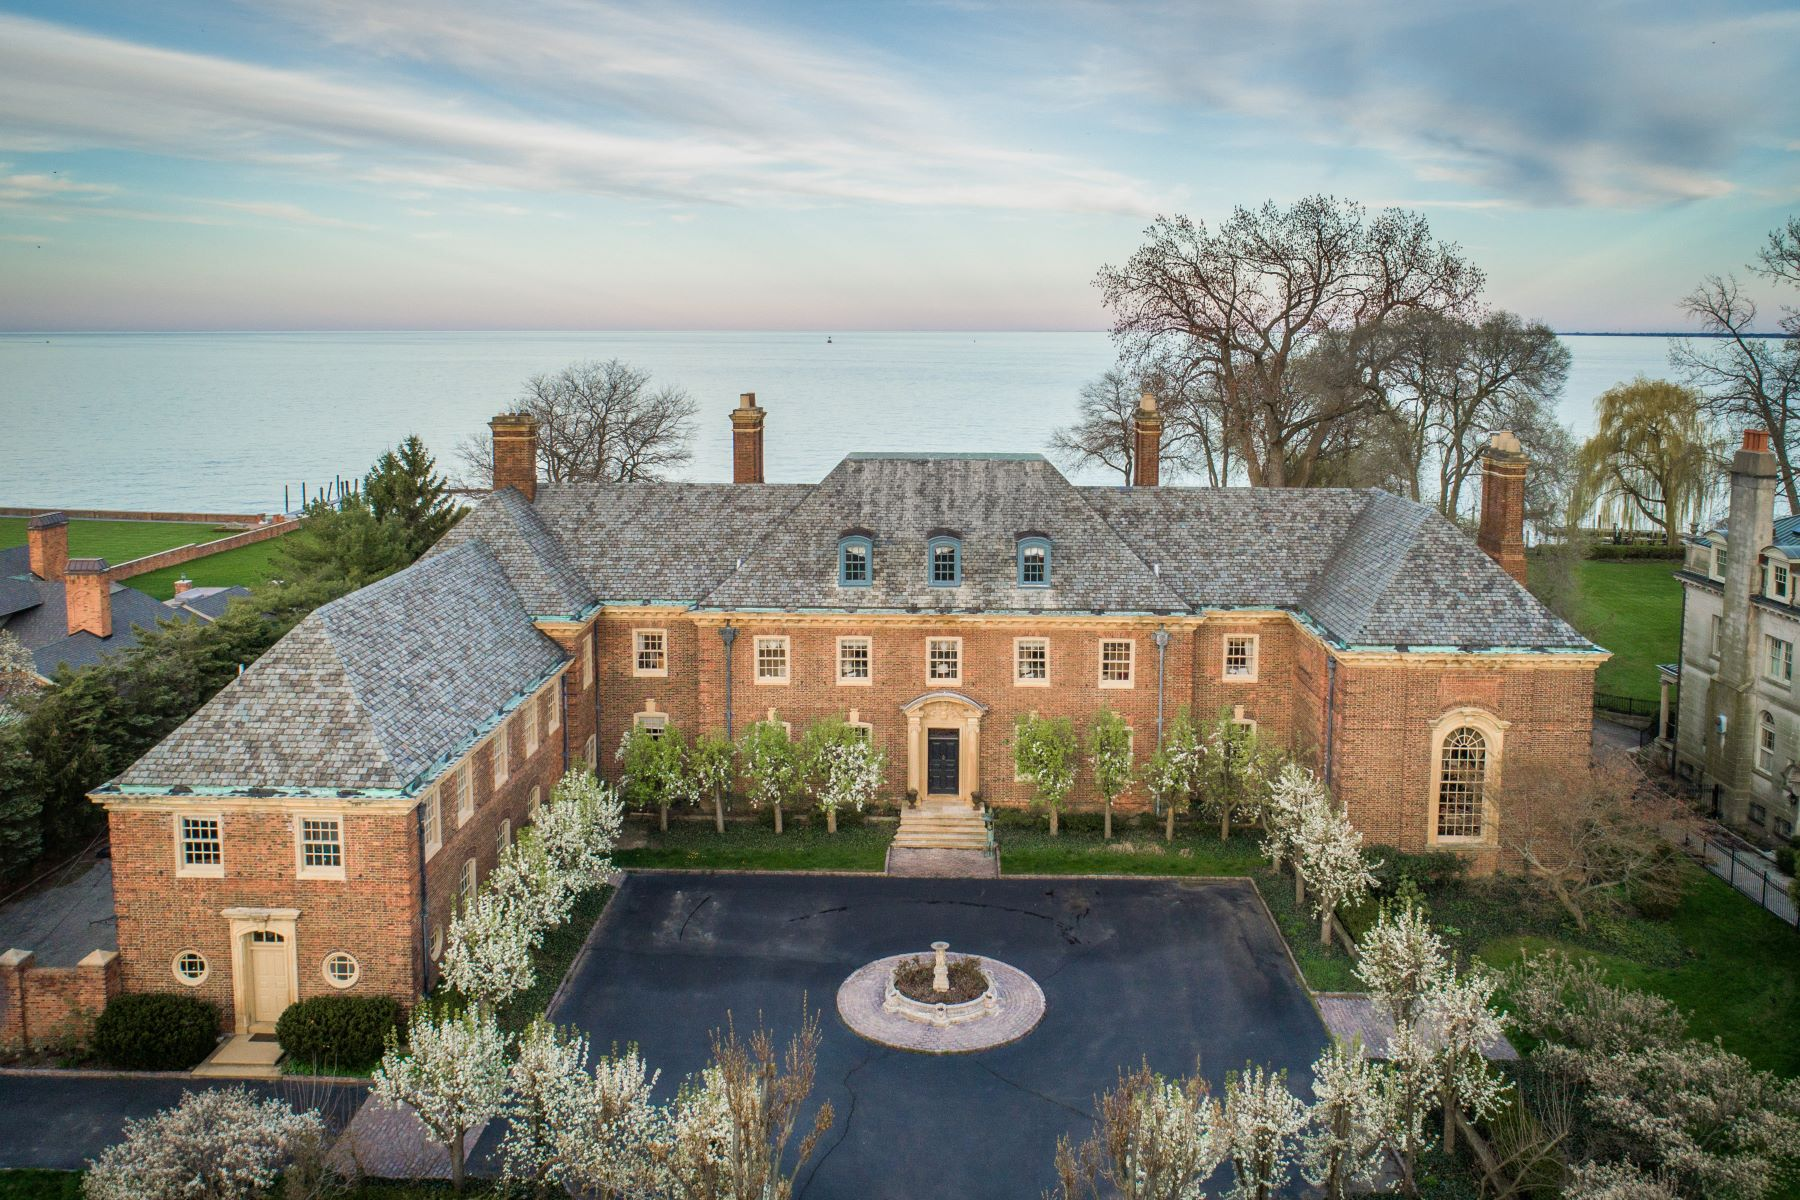 Single Family Homes for Sale at Grosse Pointe Park 15530 Windmill Pointe Drive Grosse Pointe Park, Michigan 48230 United States